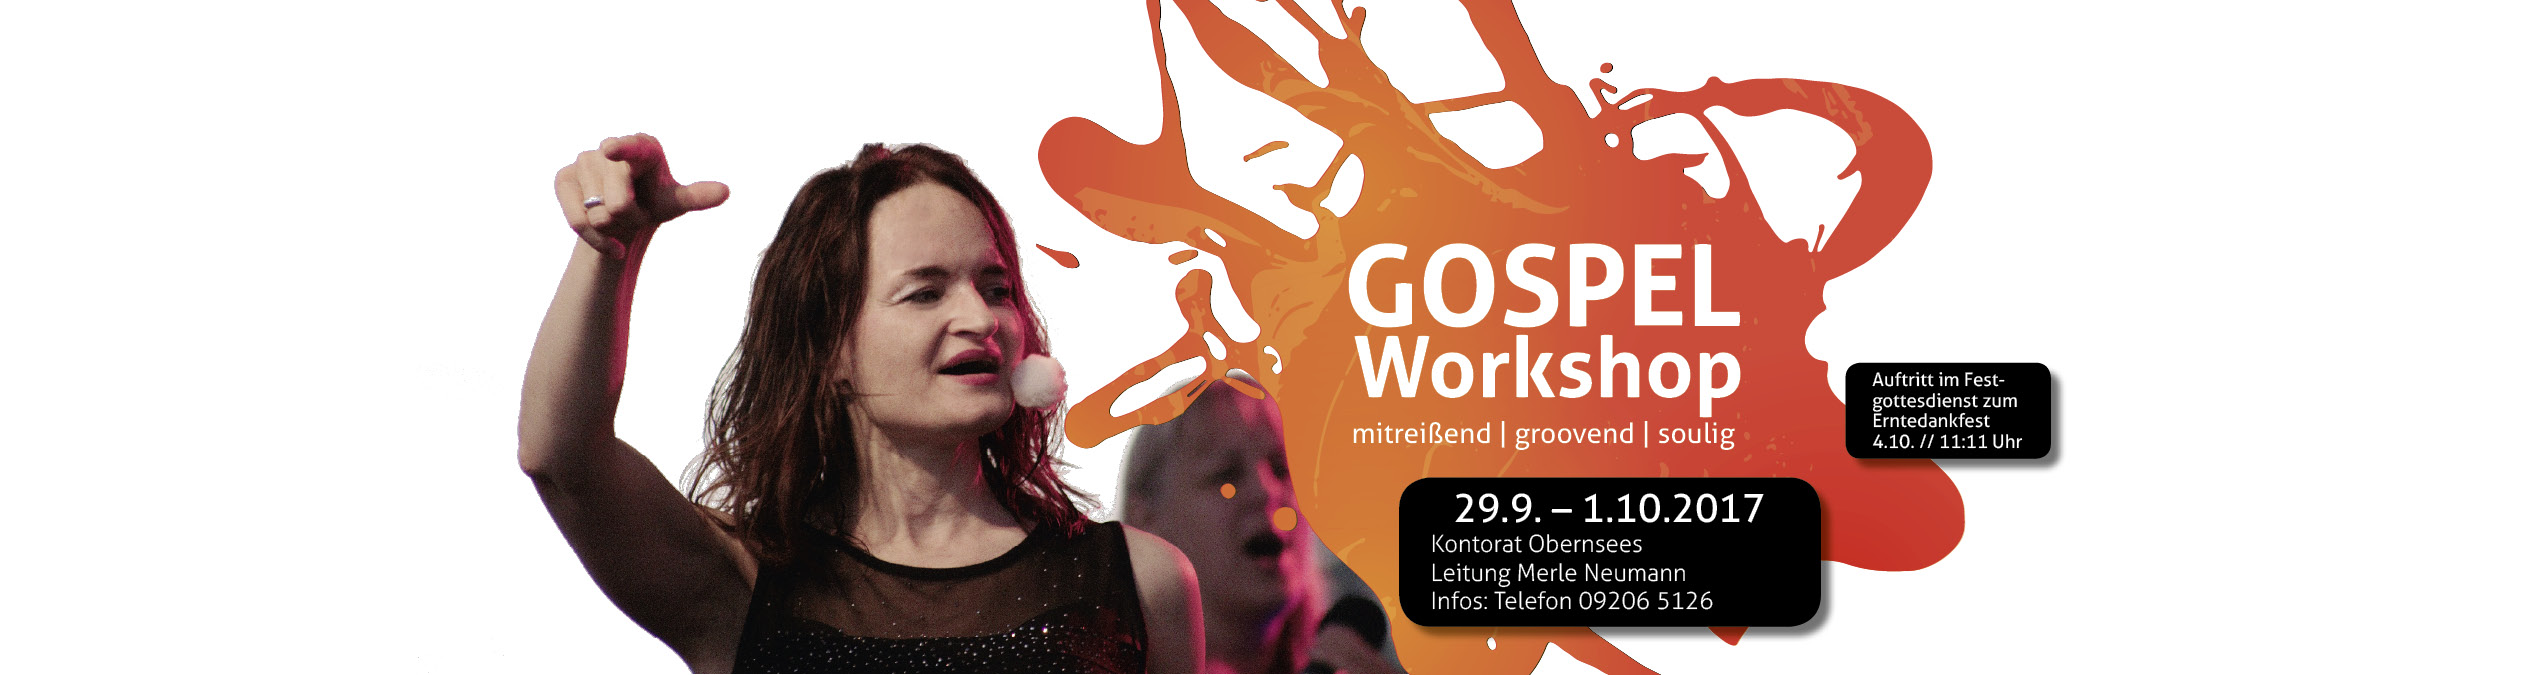 Gospelworkshop mit Merle Neumann in Obernsees 2017